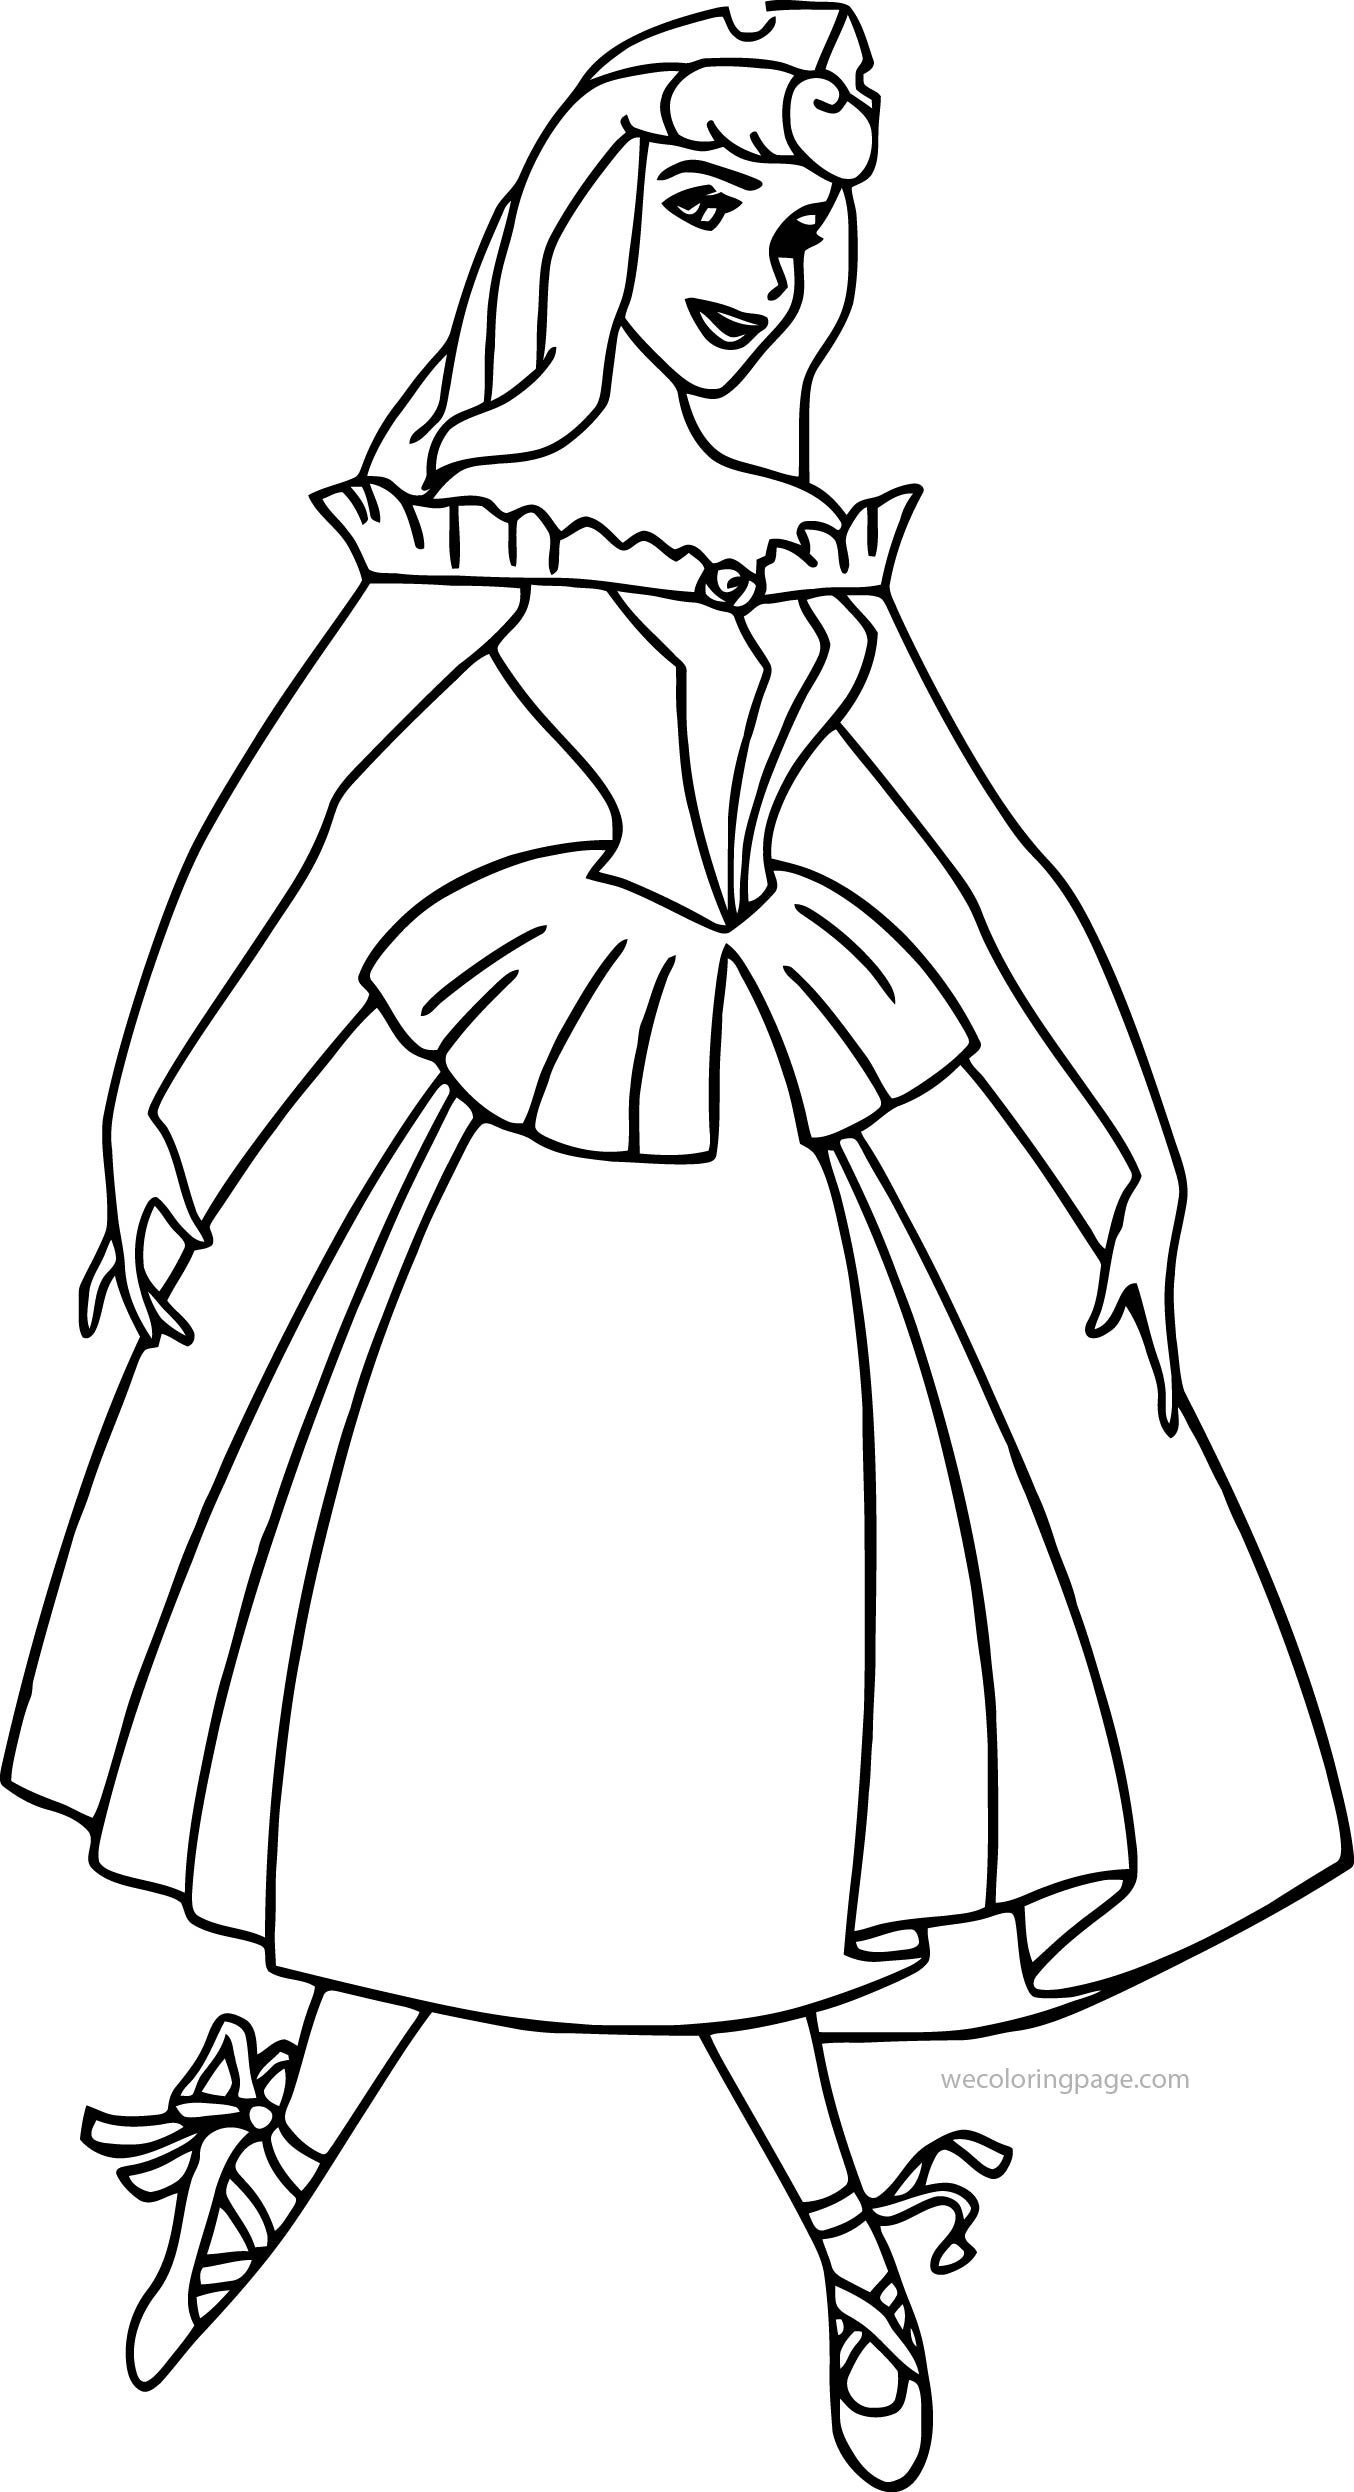 Disney Aurora Sleeping Beauty At Coloring Pages 28